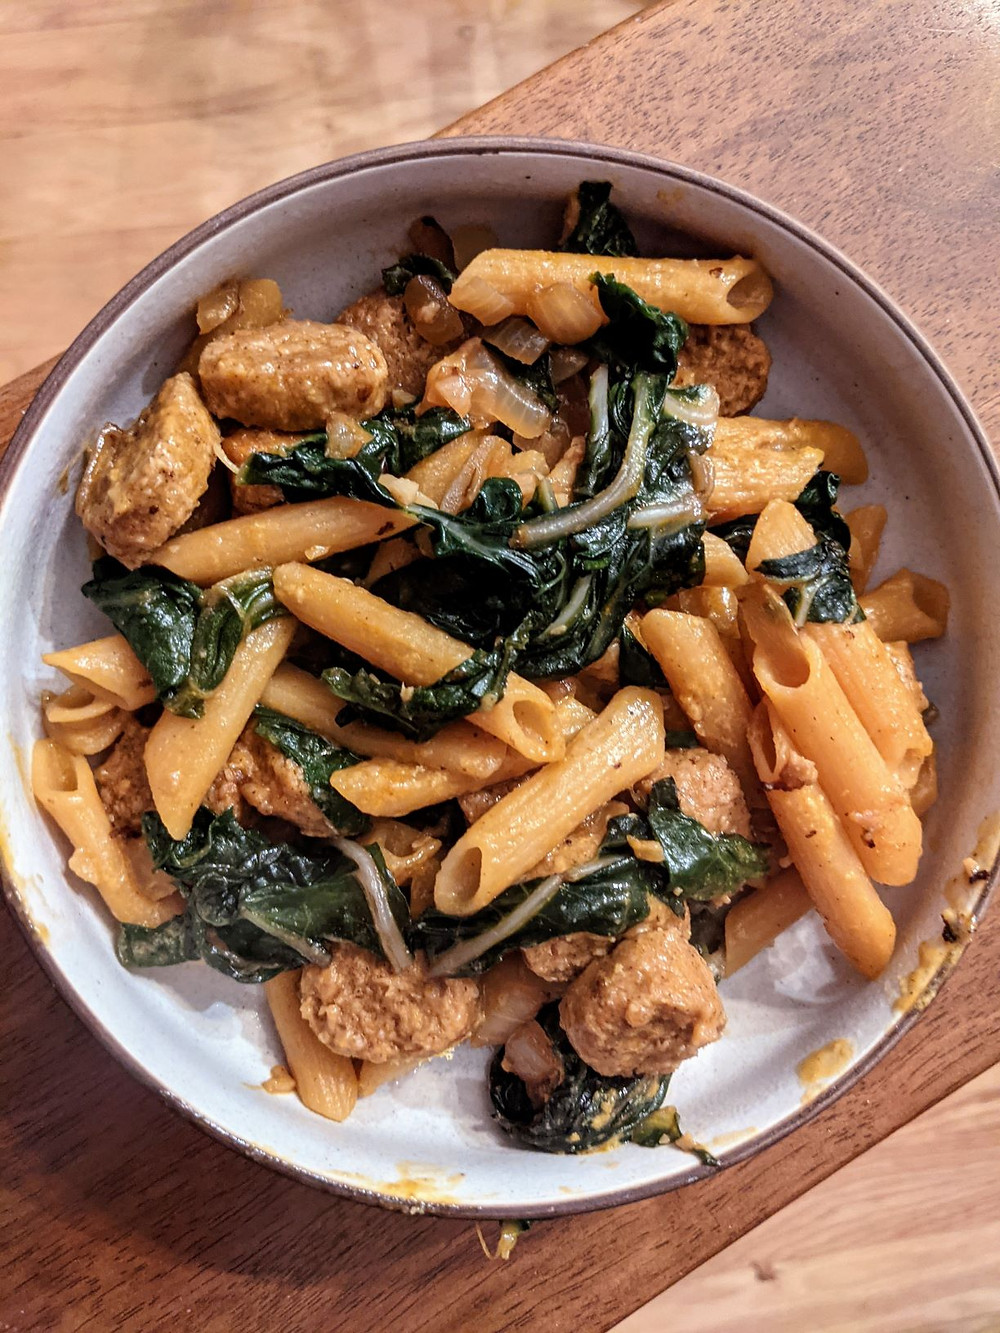 Penne with Chard and Beyond Meat Sausage